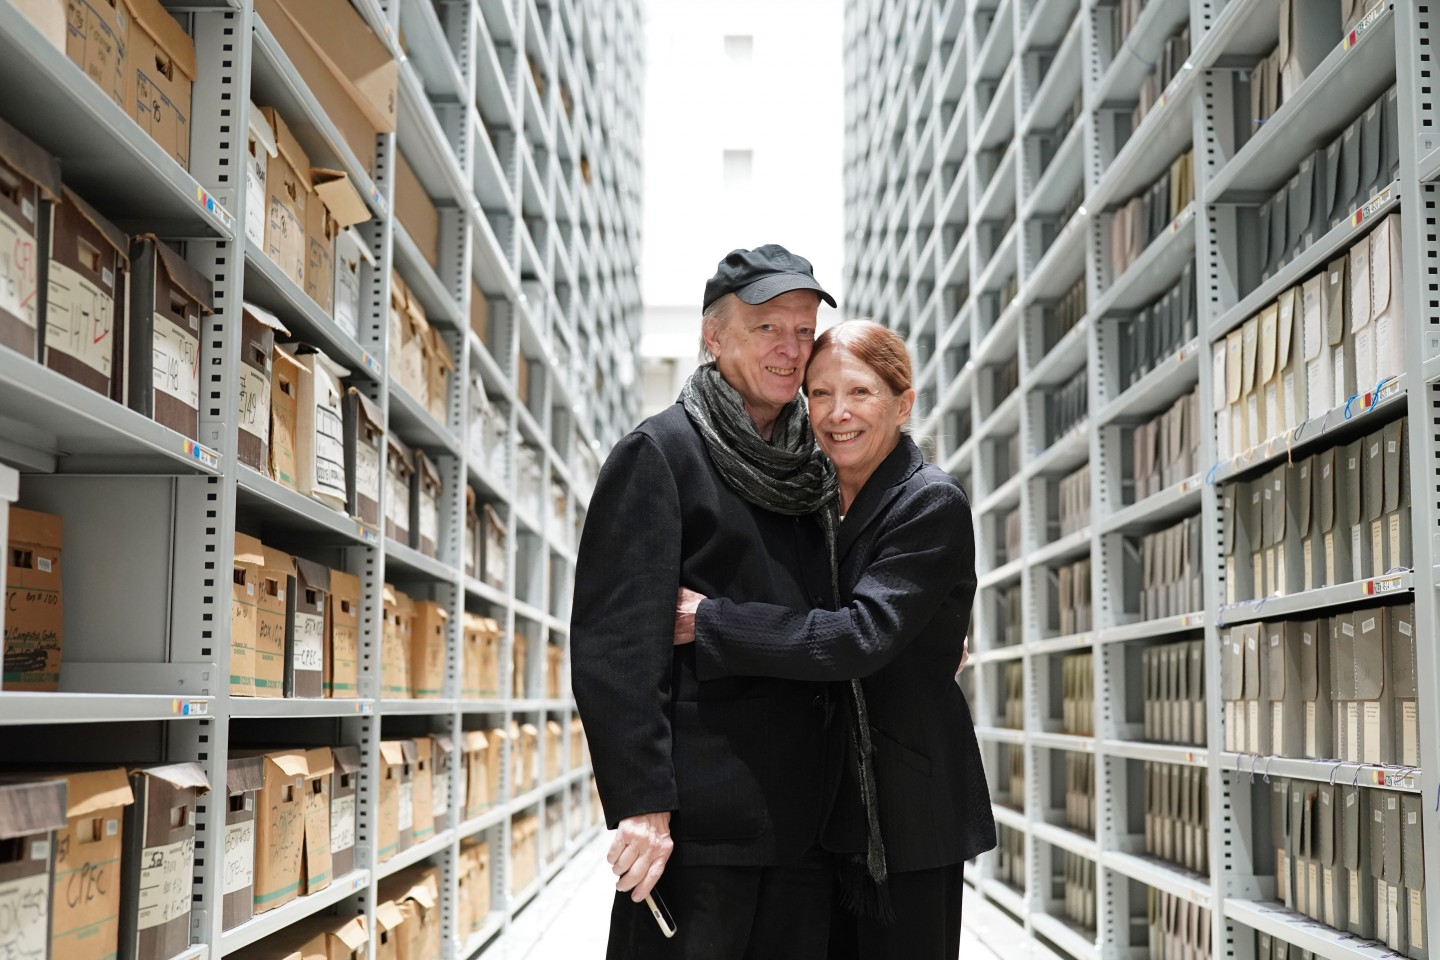 Photo of author and illustrator David Small and author Sarah Stewart standing between long sets of shevles.